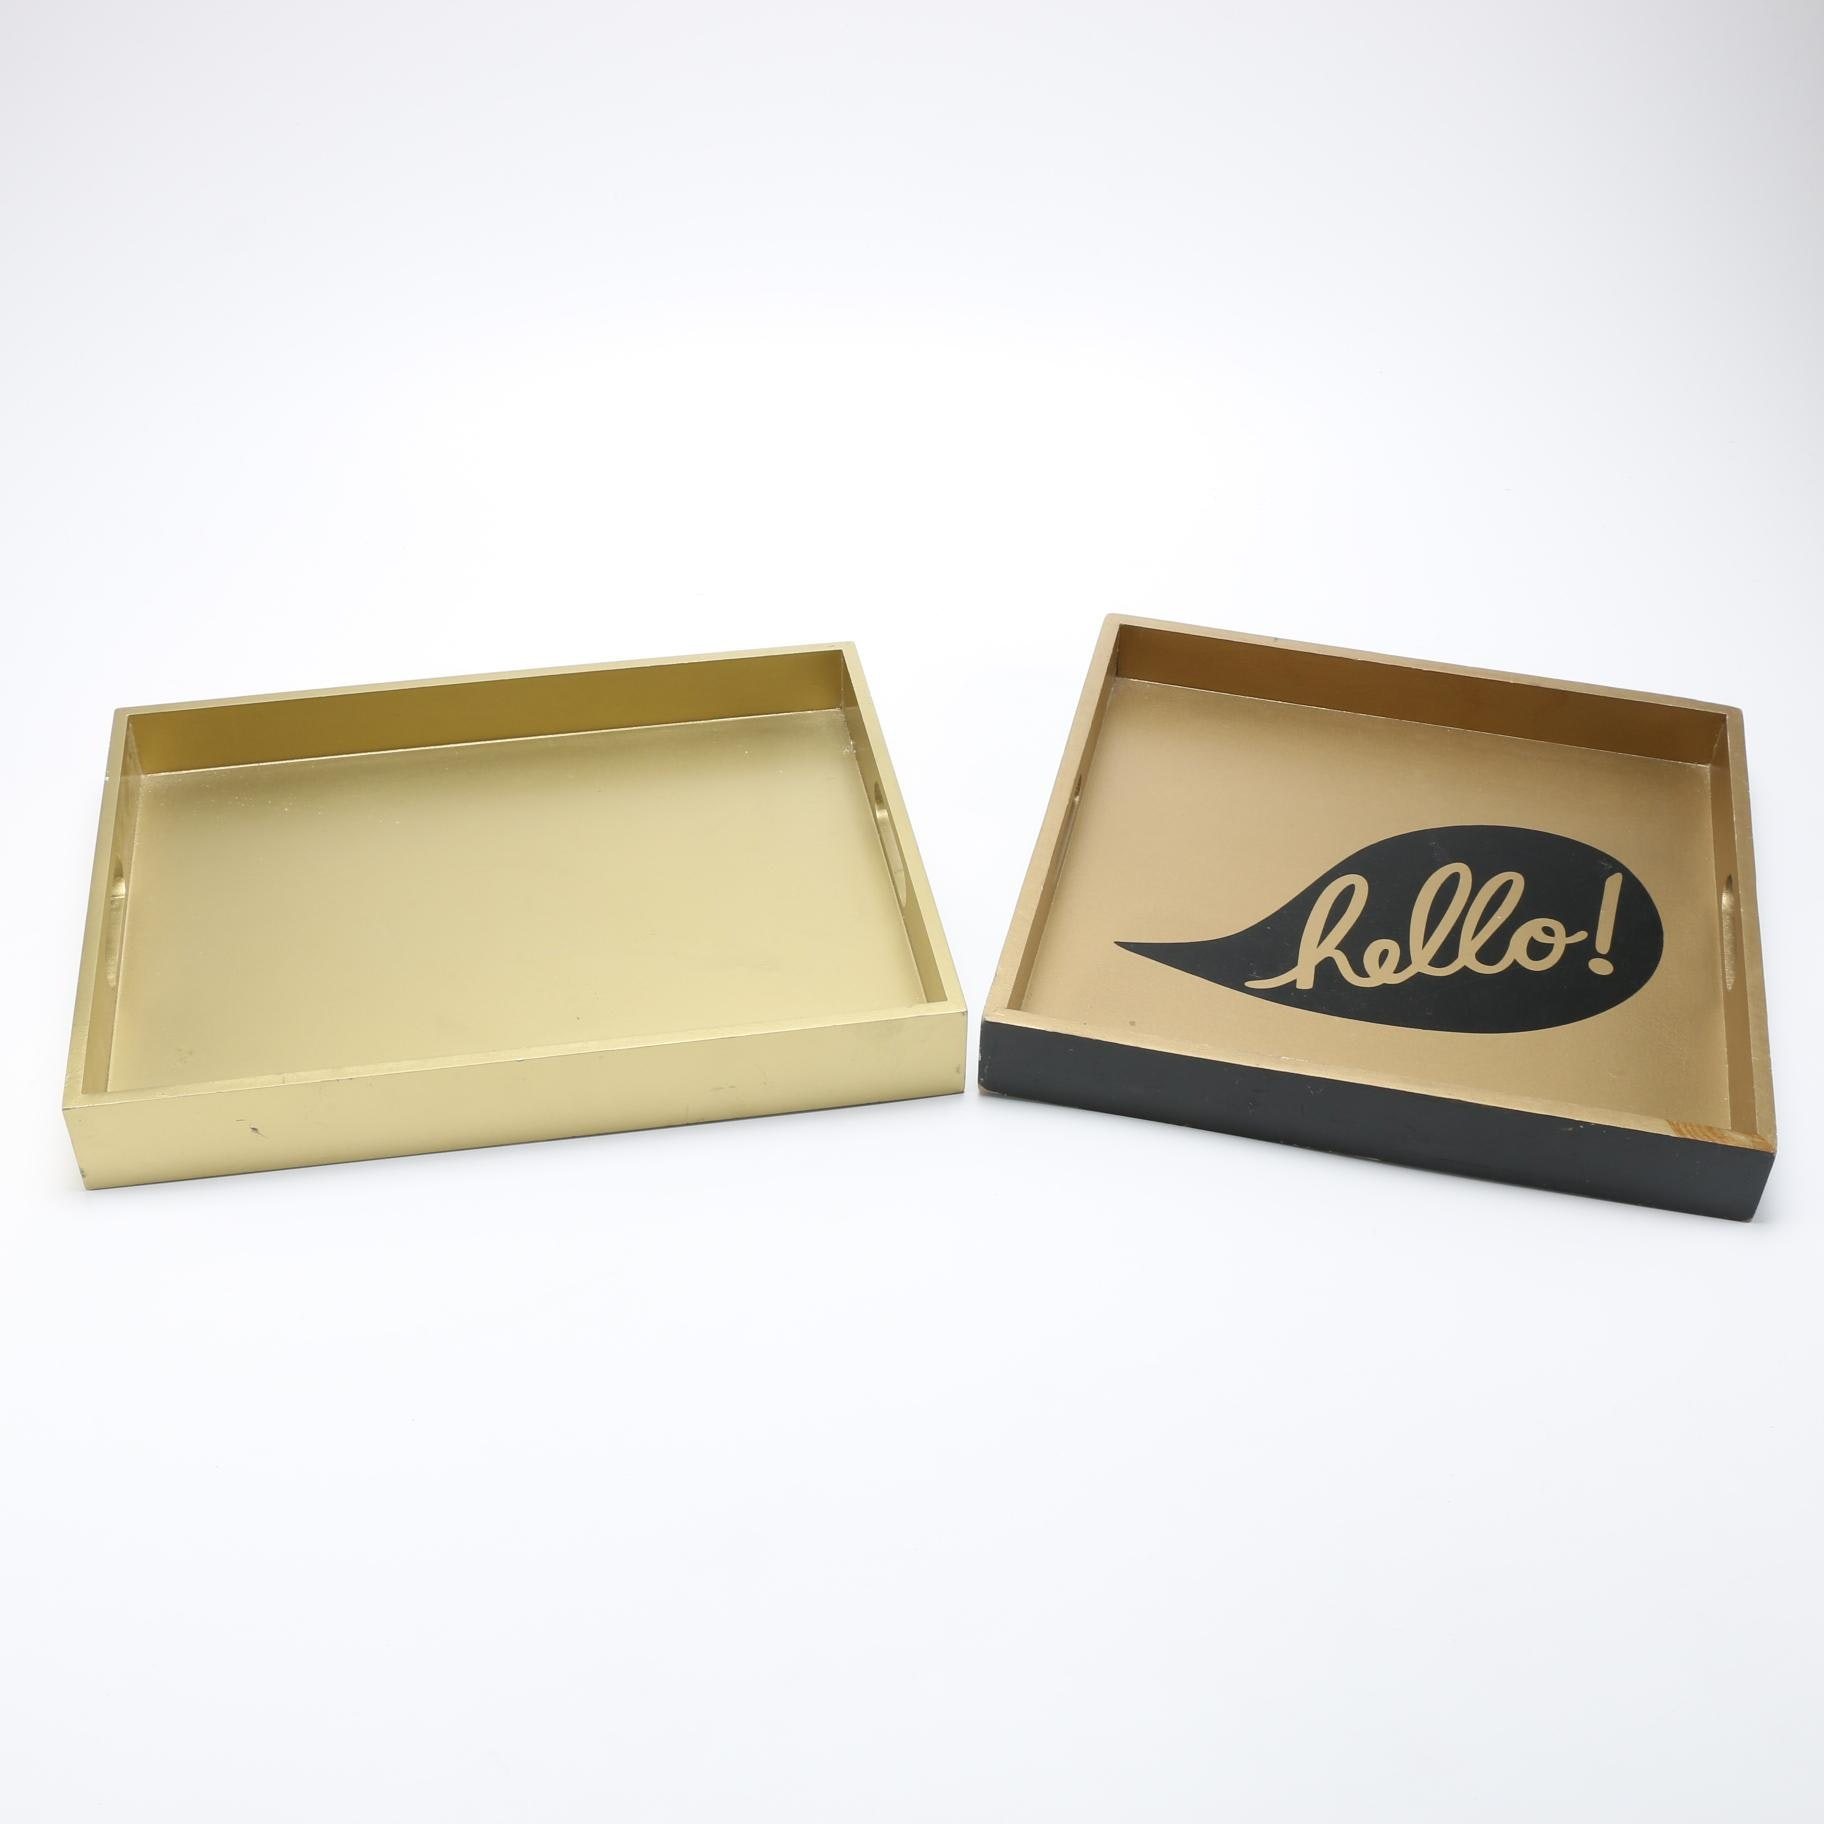 Contemporary Gold Tone Handled Trays